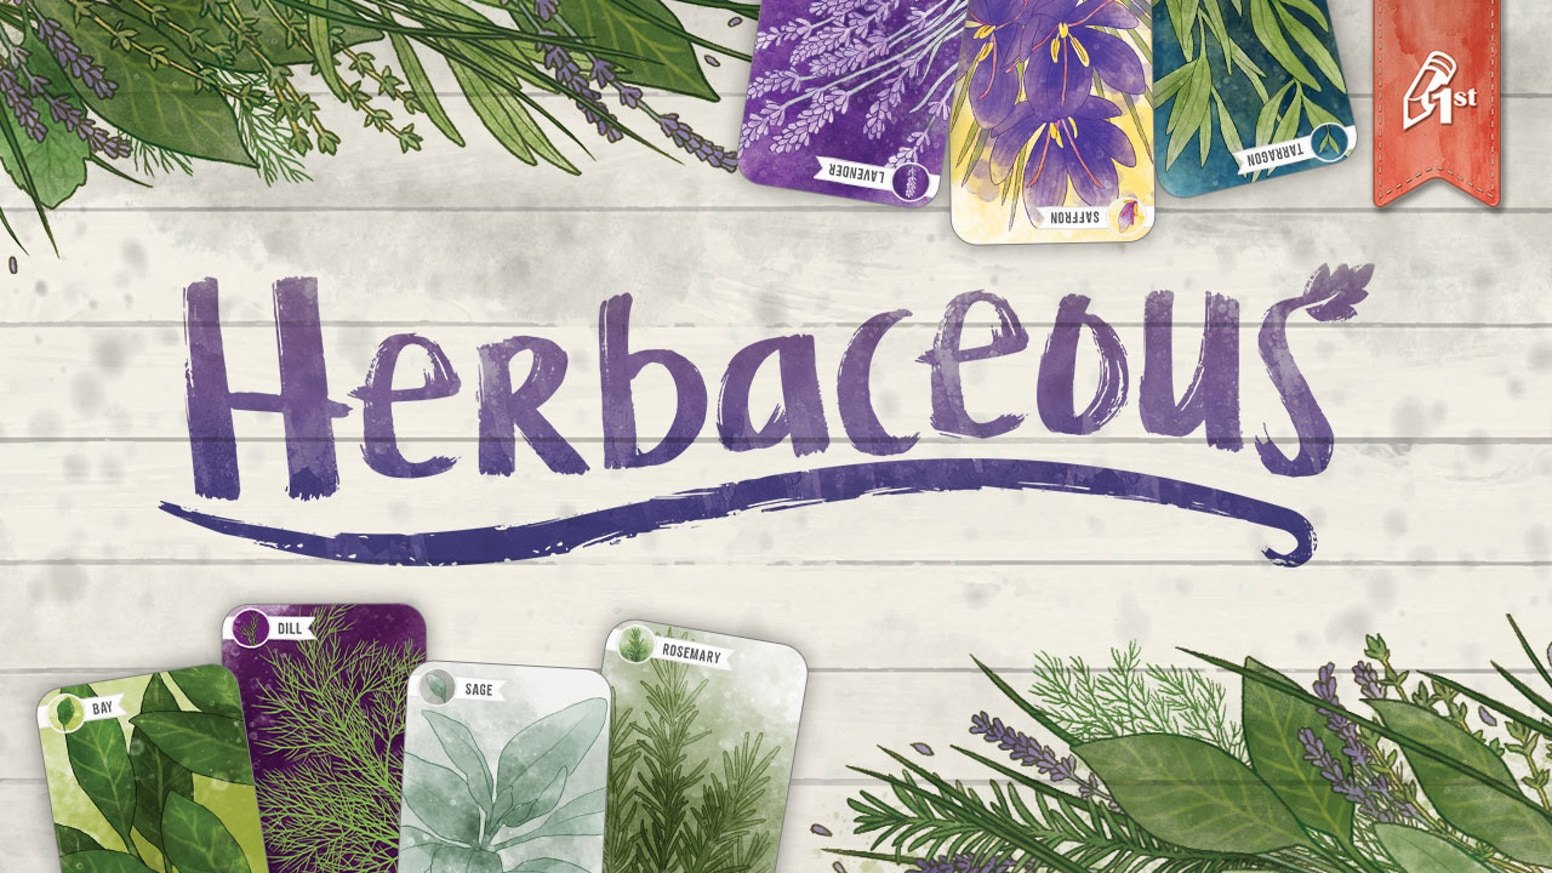 Herbaceous! A relaxing card game for 1 to 4 players of all ages. Simple to teach, easy to learn, and always packed with flavor.